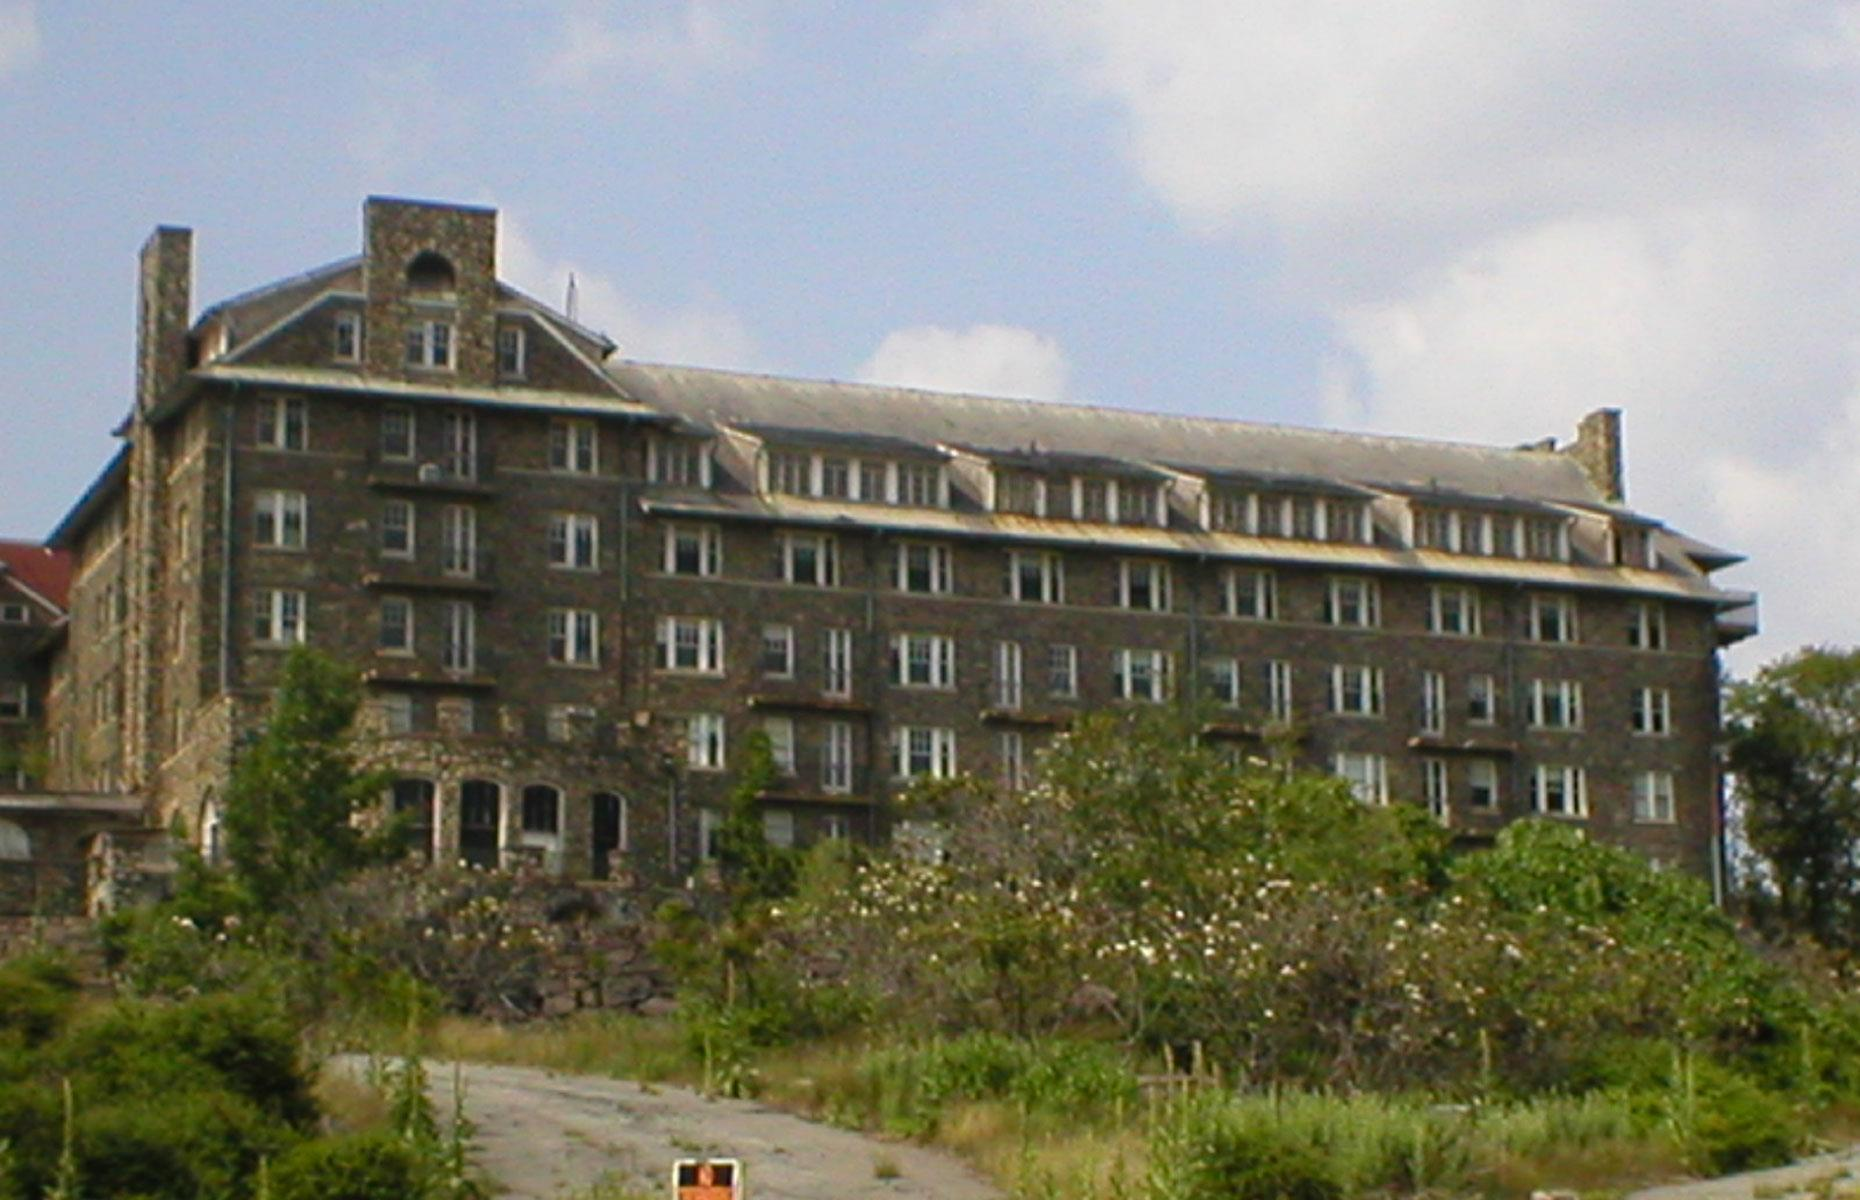 Slide 34 of 70: Another abandoned vacation resort in the Pocono Mountains, Buck Hill Falls was originally founded in 1901. Financial troubles and several fires led to the closure of the 400-bedroom resort in 1990.